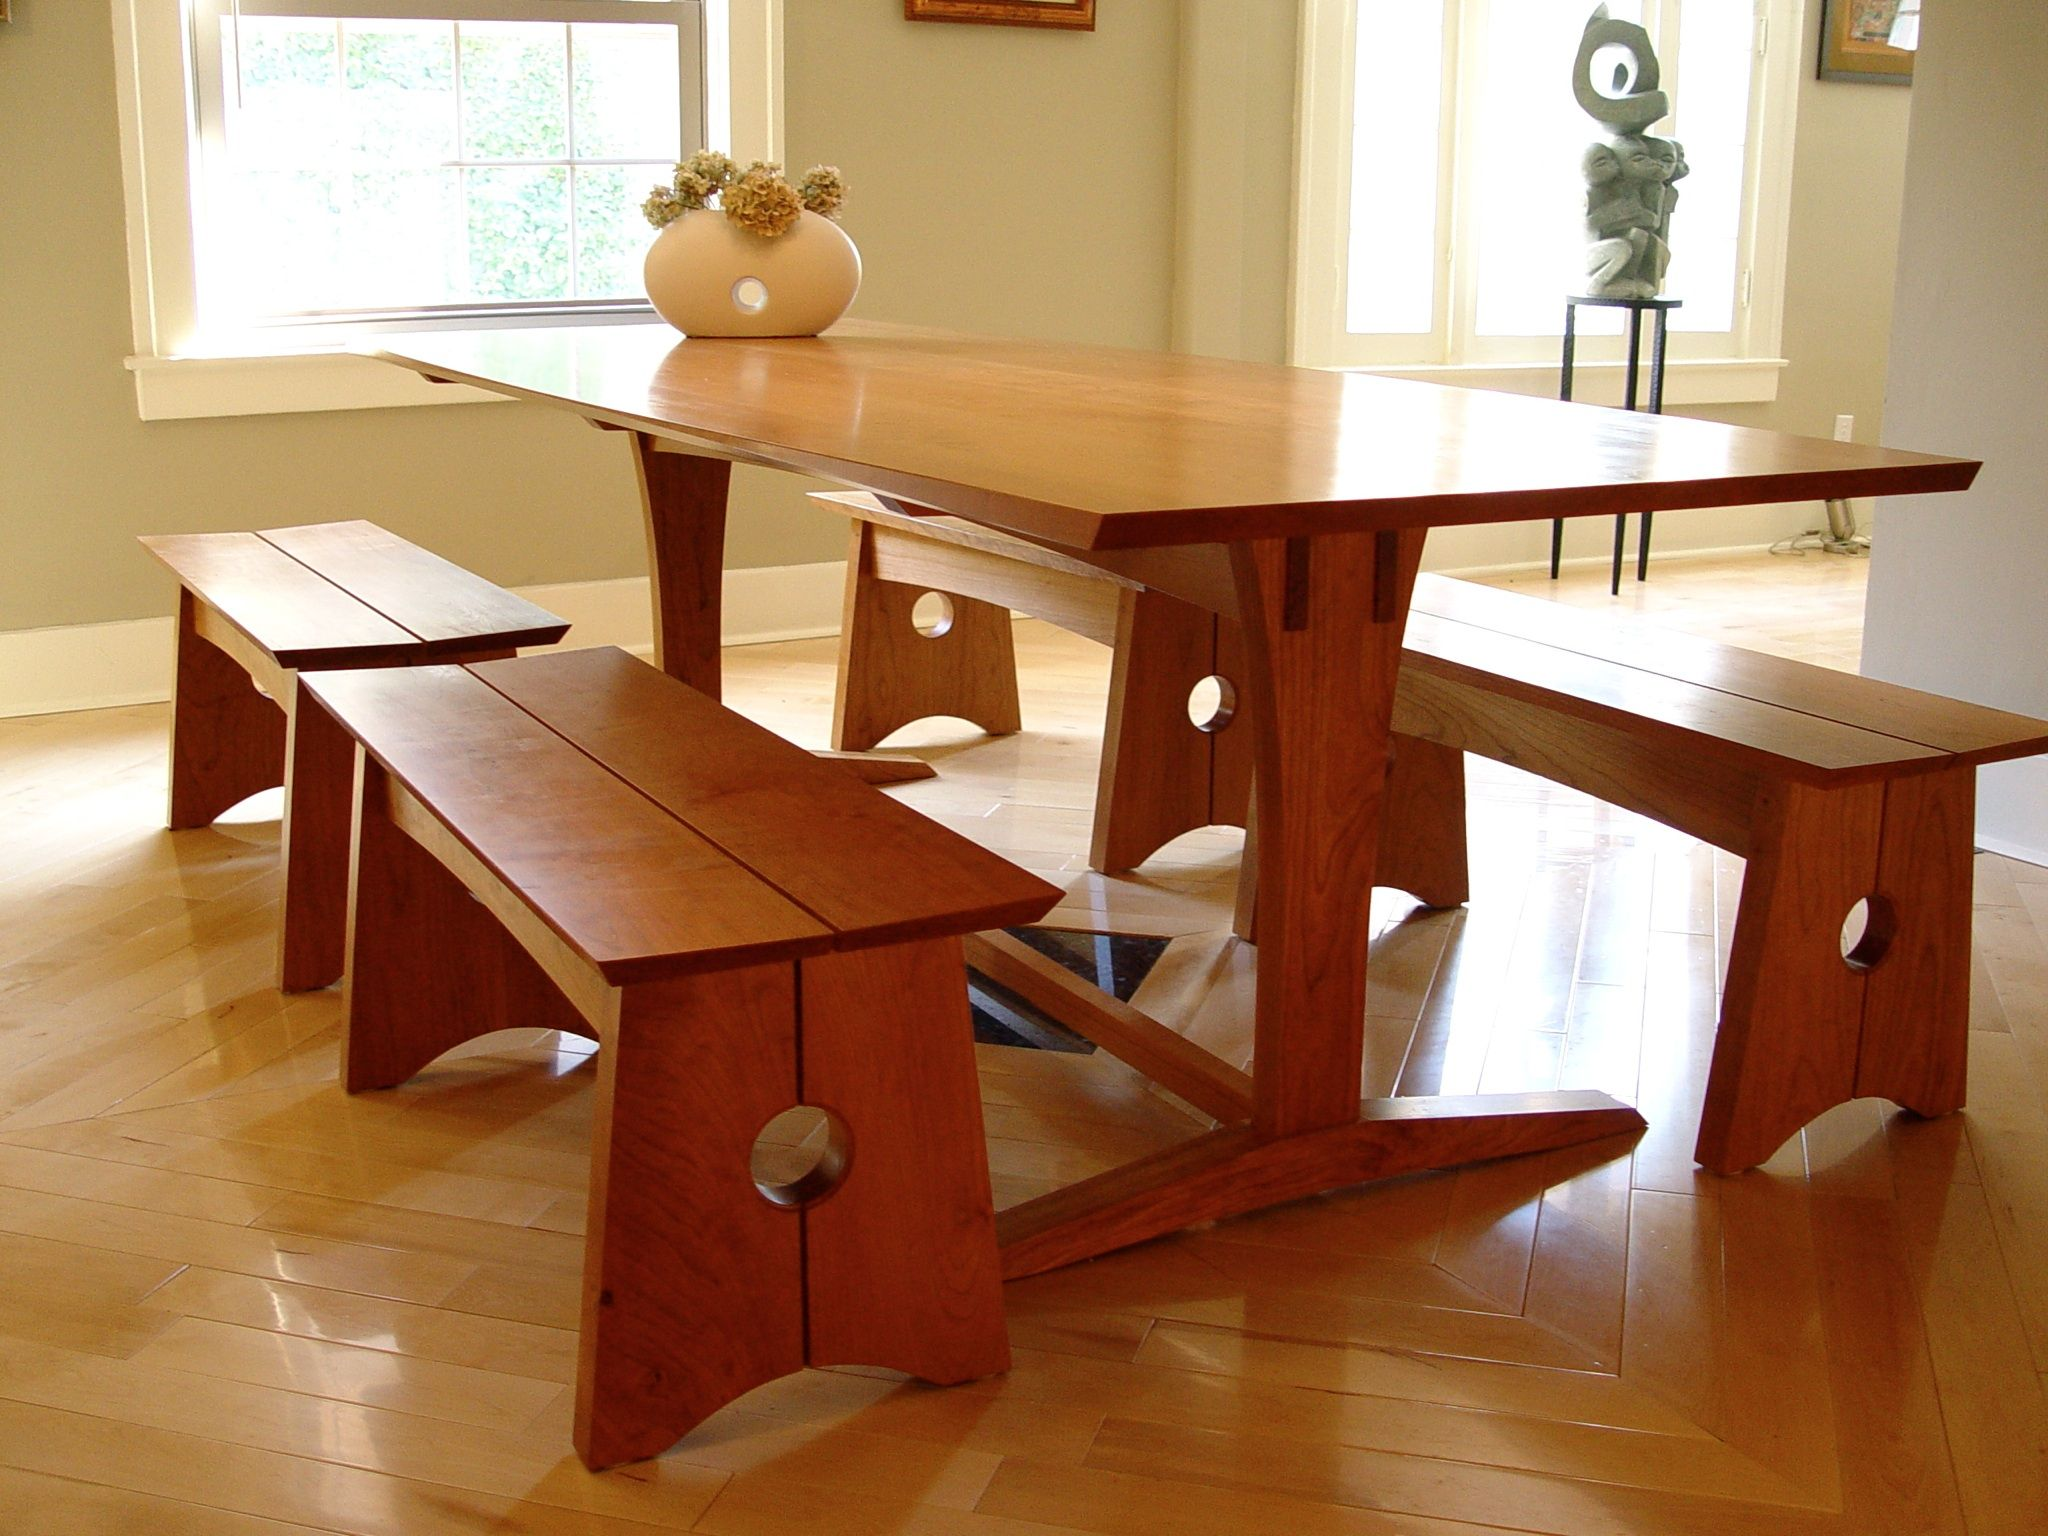 Ashi Trestle Table And Benches Furniture MakersTrestle TablesDining